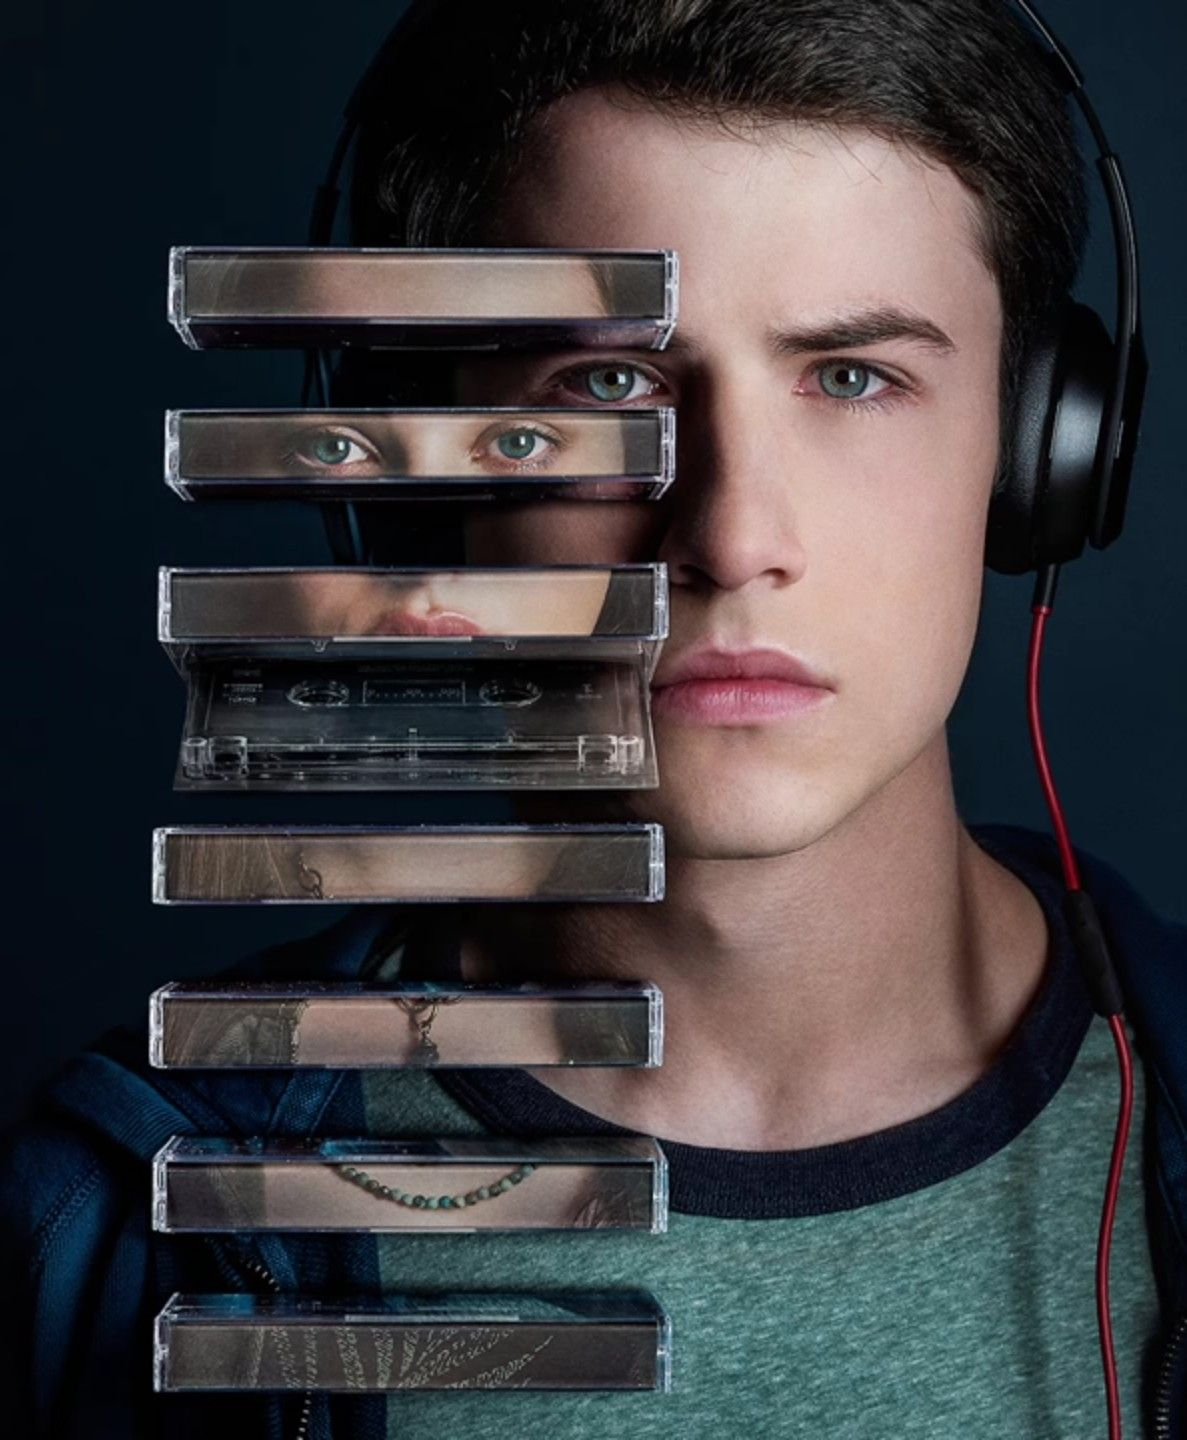 Clay And Hannah With Images 13 Reasons Why Poster 13 Reasons